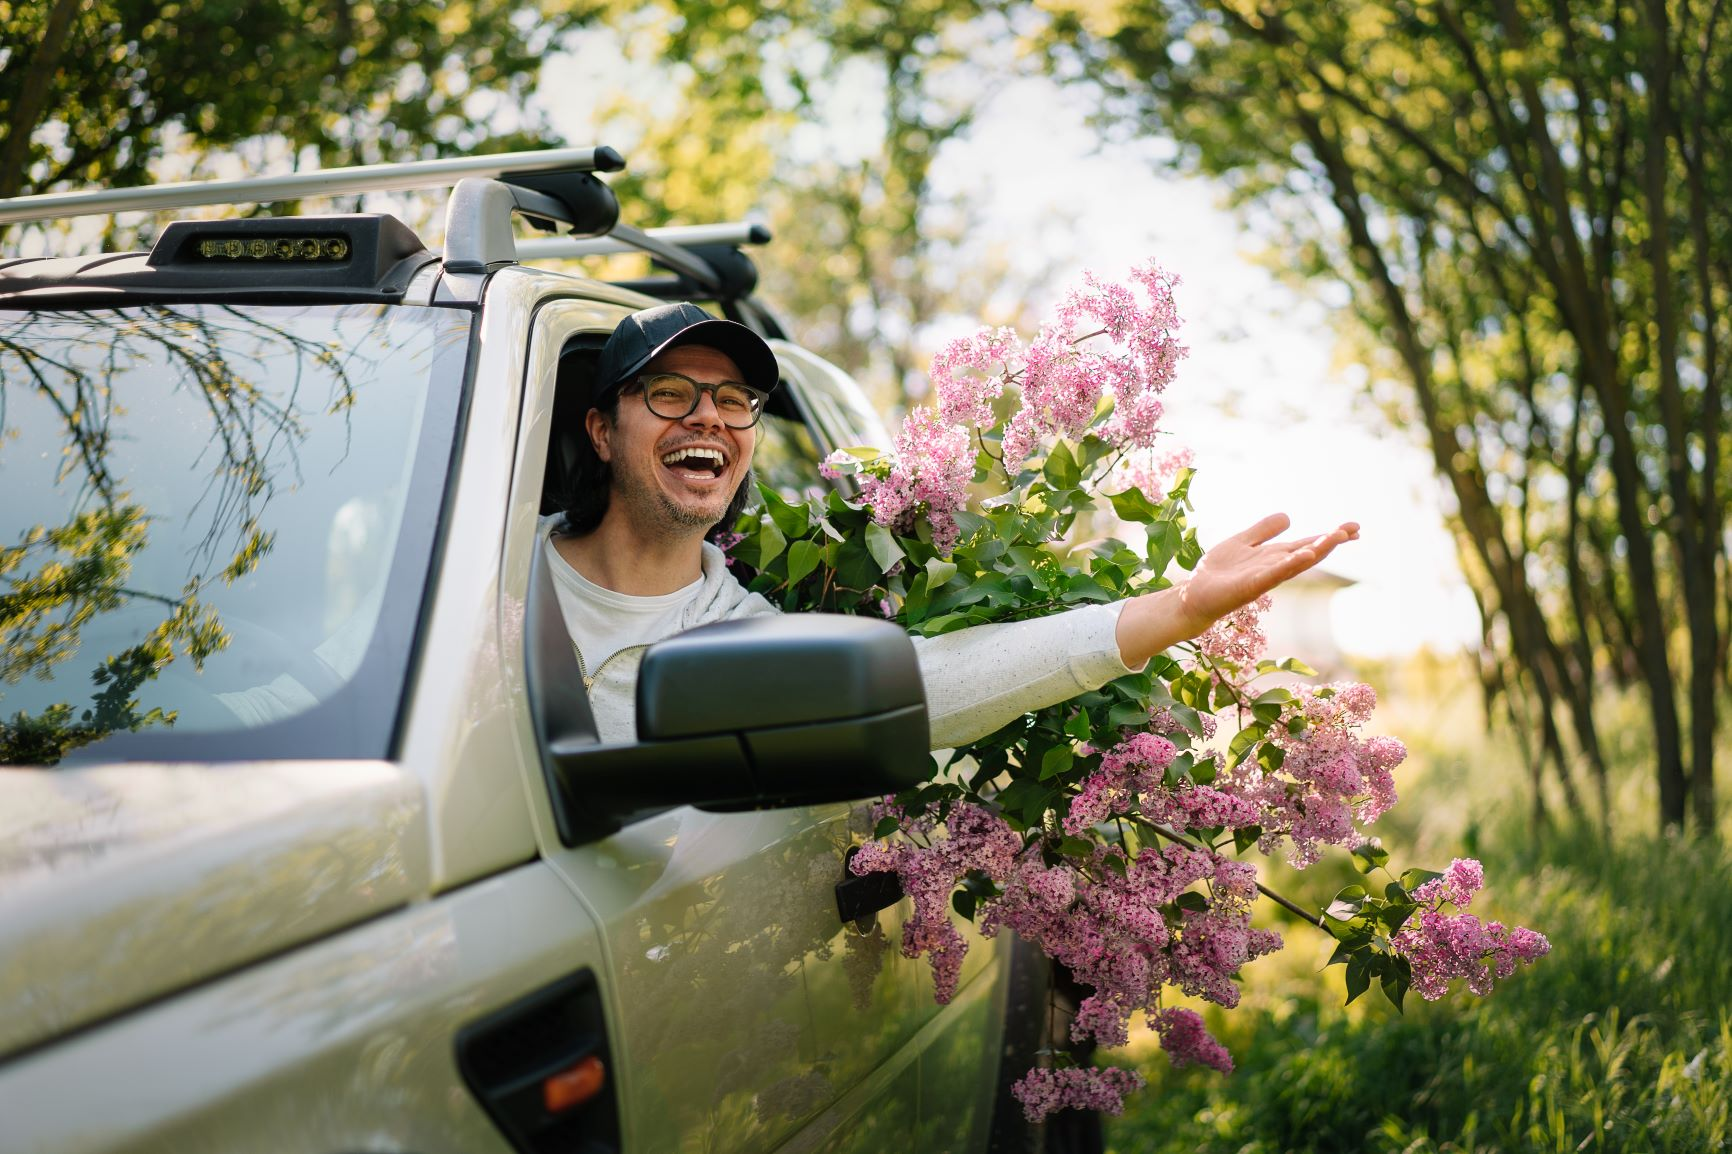 Man driving a car with the window down smiling by flowers